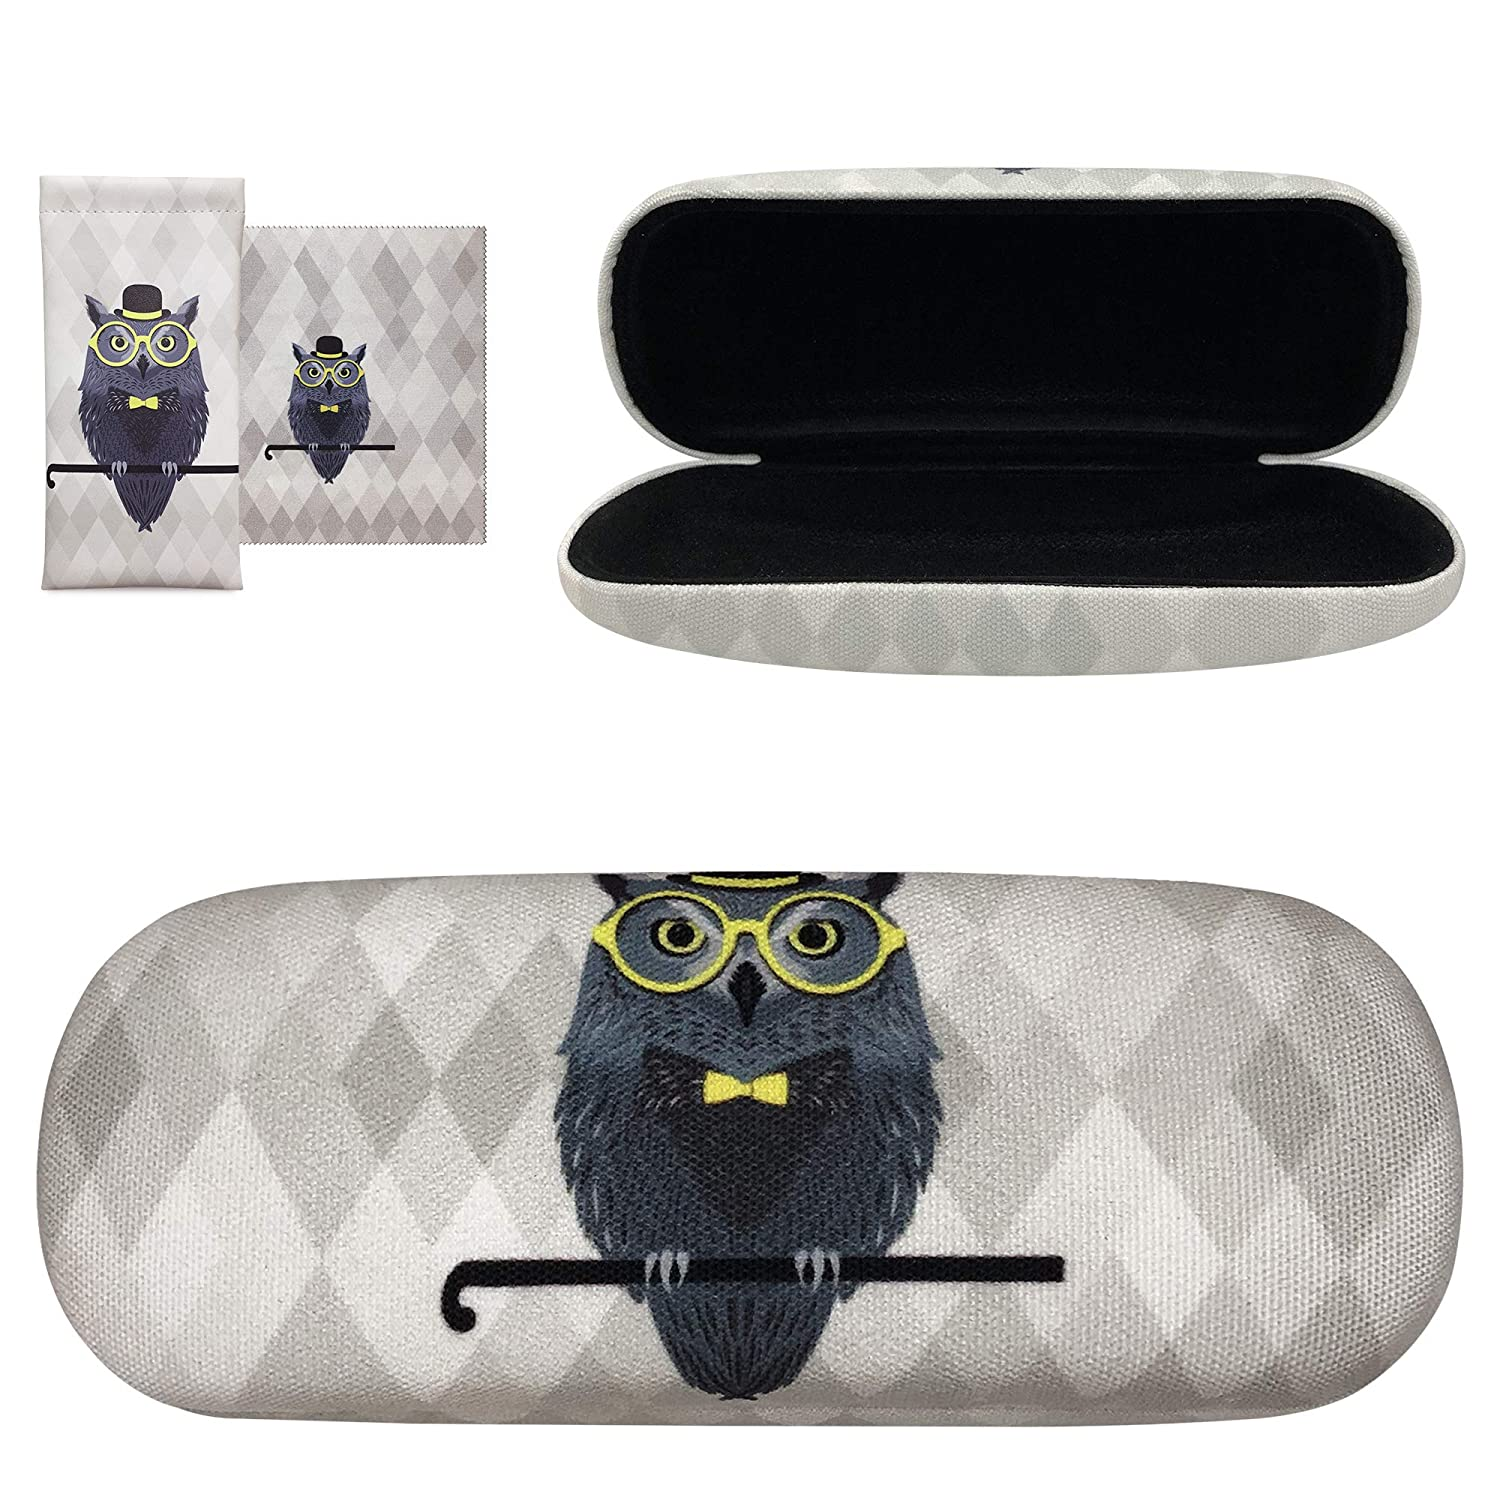 Cute Owl Elk Fabric Print Large Sunglasses Case Yulan Hard Shell Eyeglasses Case Includes Glasses Pouch